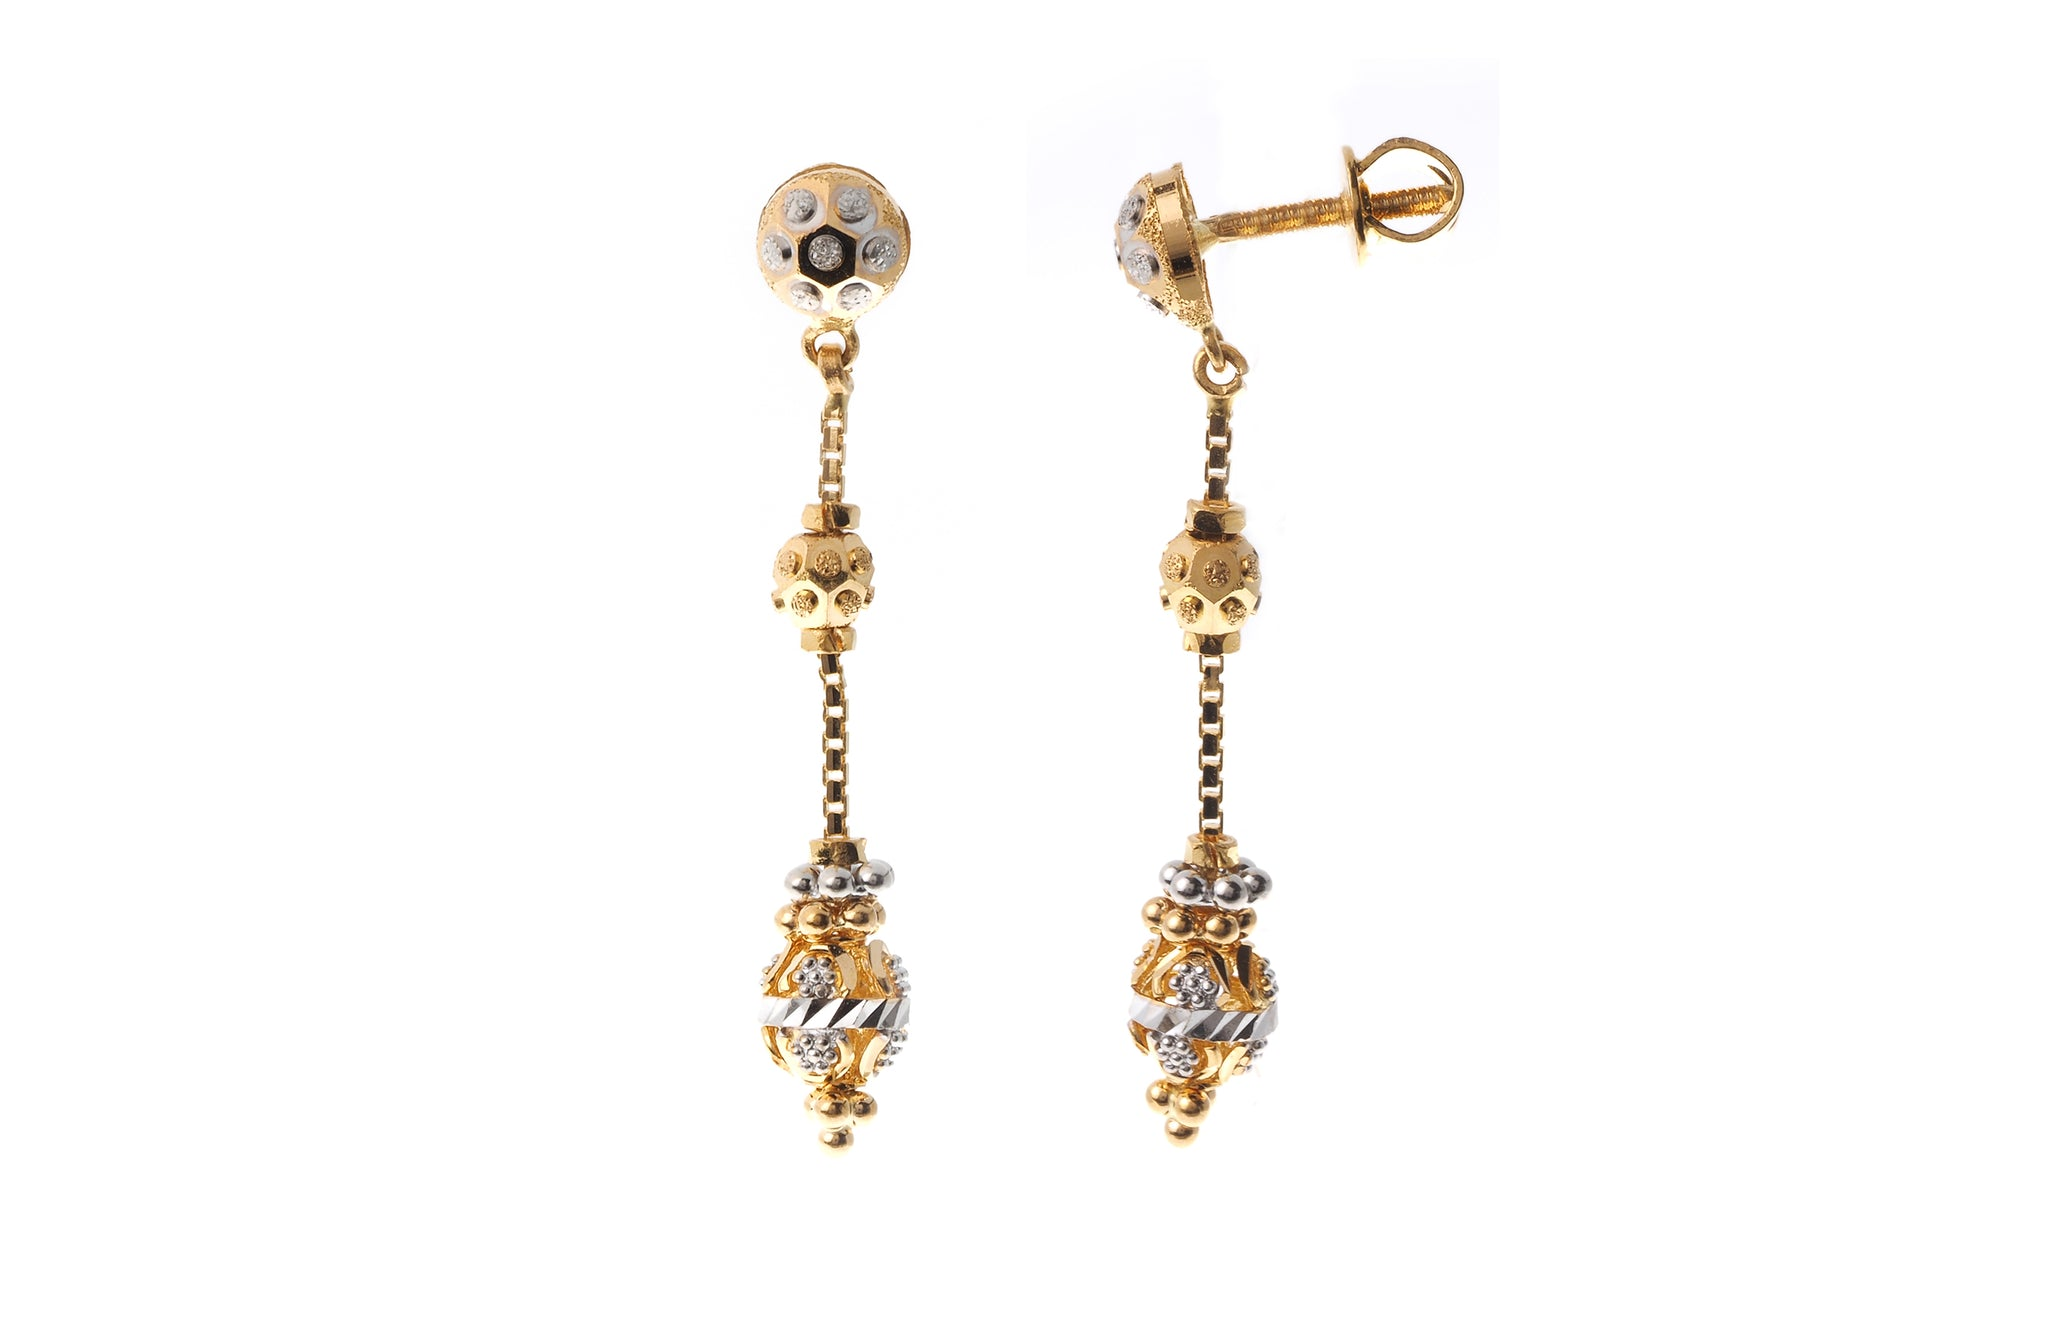 22ct Gold Drop Earrings with Diamond Cut and Rhodium Design (5.1g) (E-7228)